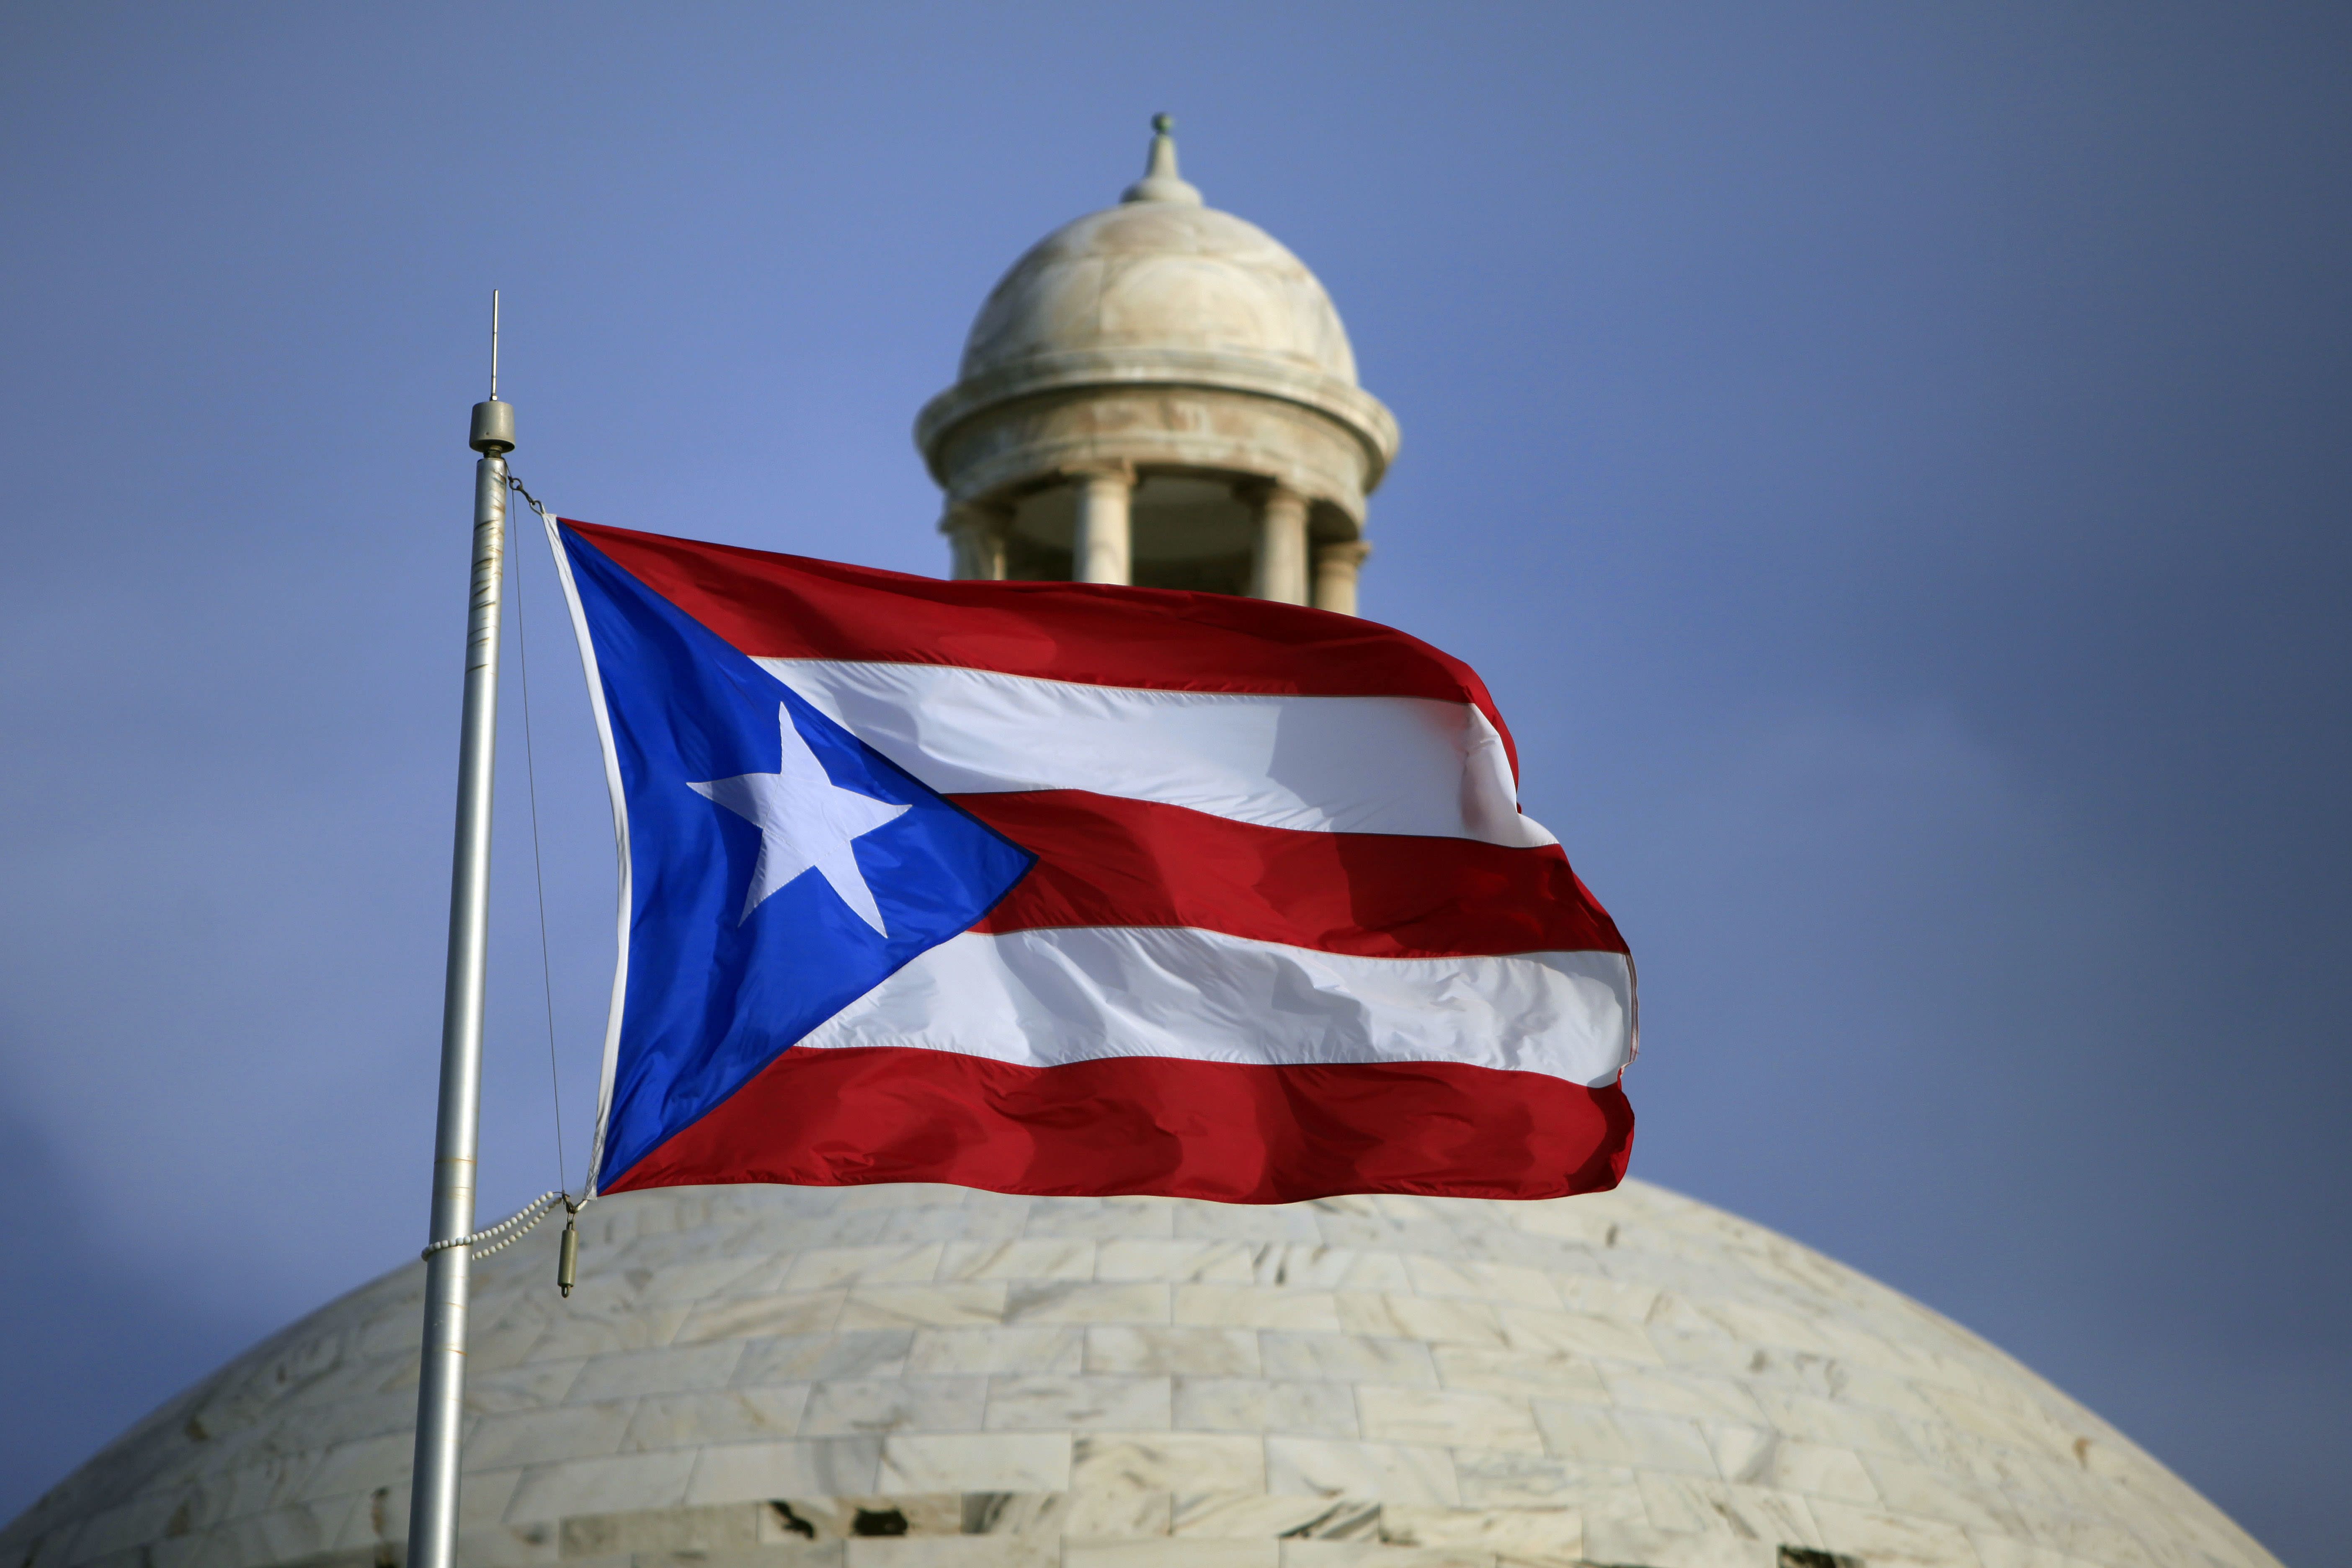 FILE - In this July 29, 2015 file photo, the Puerto Rican flag flies in front of Puerto Rico's Capitol as in San Juan, Puerto Rico. A federal control board that oversees Puerto Rico's finances approved on Wednesday, July 1, 2020, a new budget that largely suspends austerity measures and government cuts for one year as the U.S. territory struggles to recover from hurricanes, earthquakes and the pandemic. (AP Photo/Ricardo Arduengo, File)